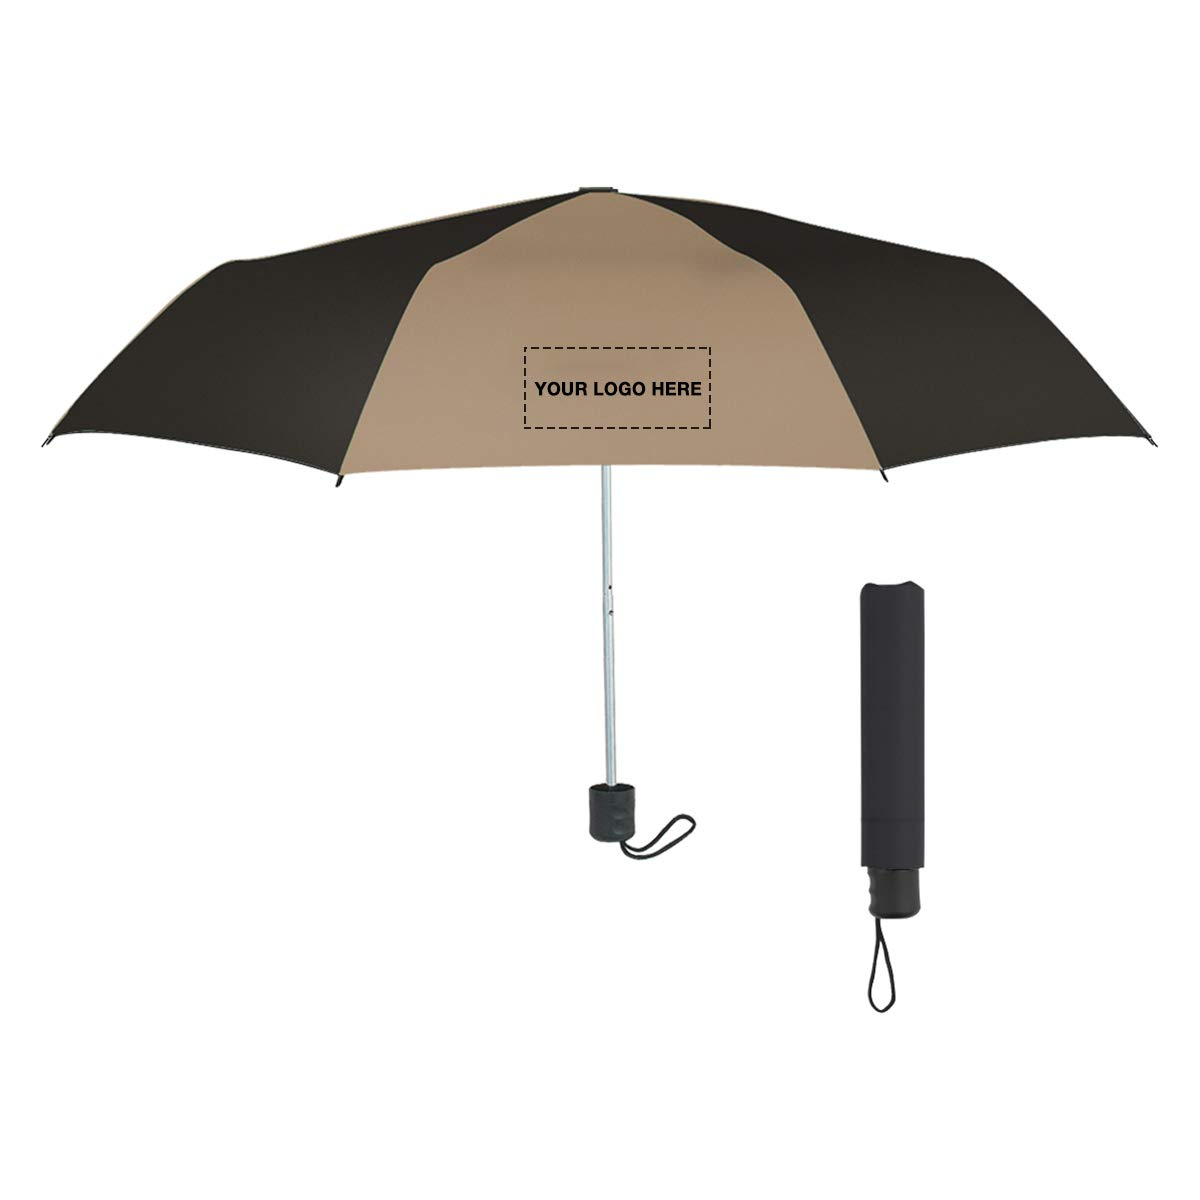 42'' Arc Telescopic Umbrella by Promo Direct | 50 QTY | 8.09 Each | Customization Product Imprinted & Personalized Bulk with Your Custom Logo